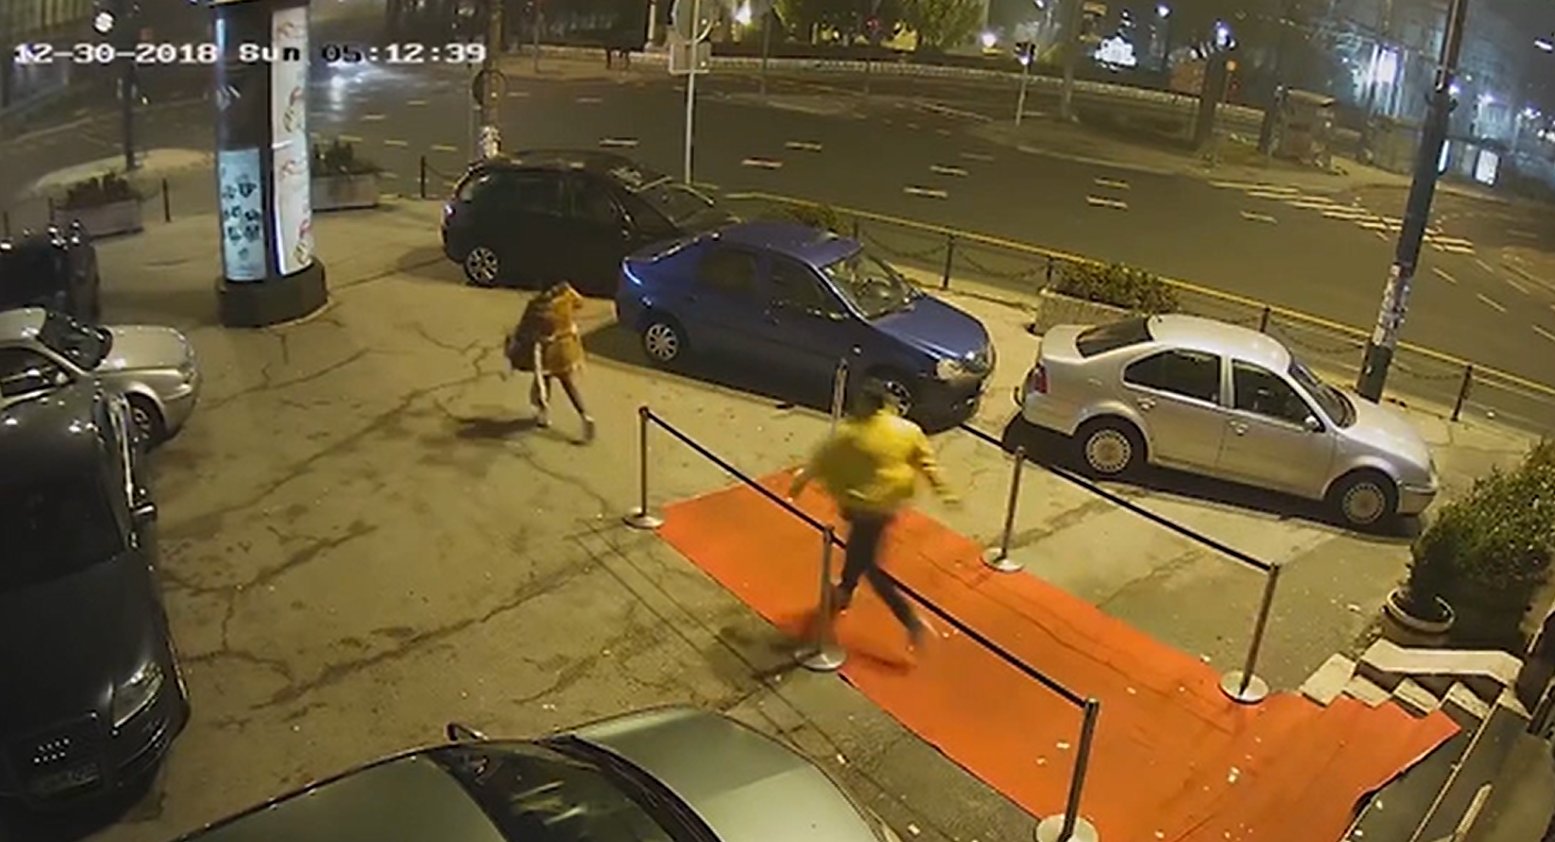 The woman was leaving the Dorain Gray nightclub when she was ambushed. Credit: CCTV/Twitter